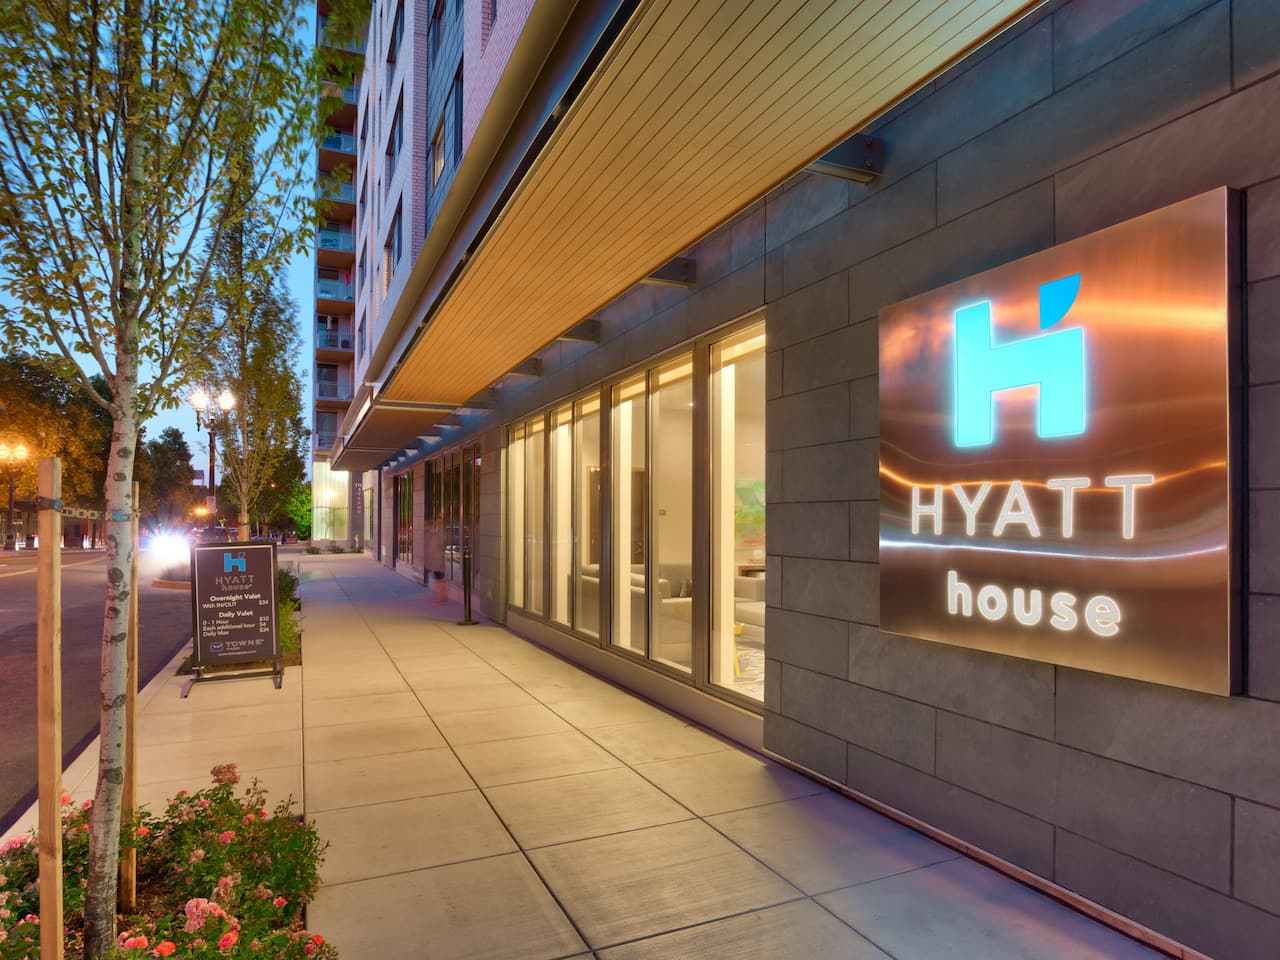 Hyatt House Exterior Night